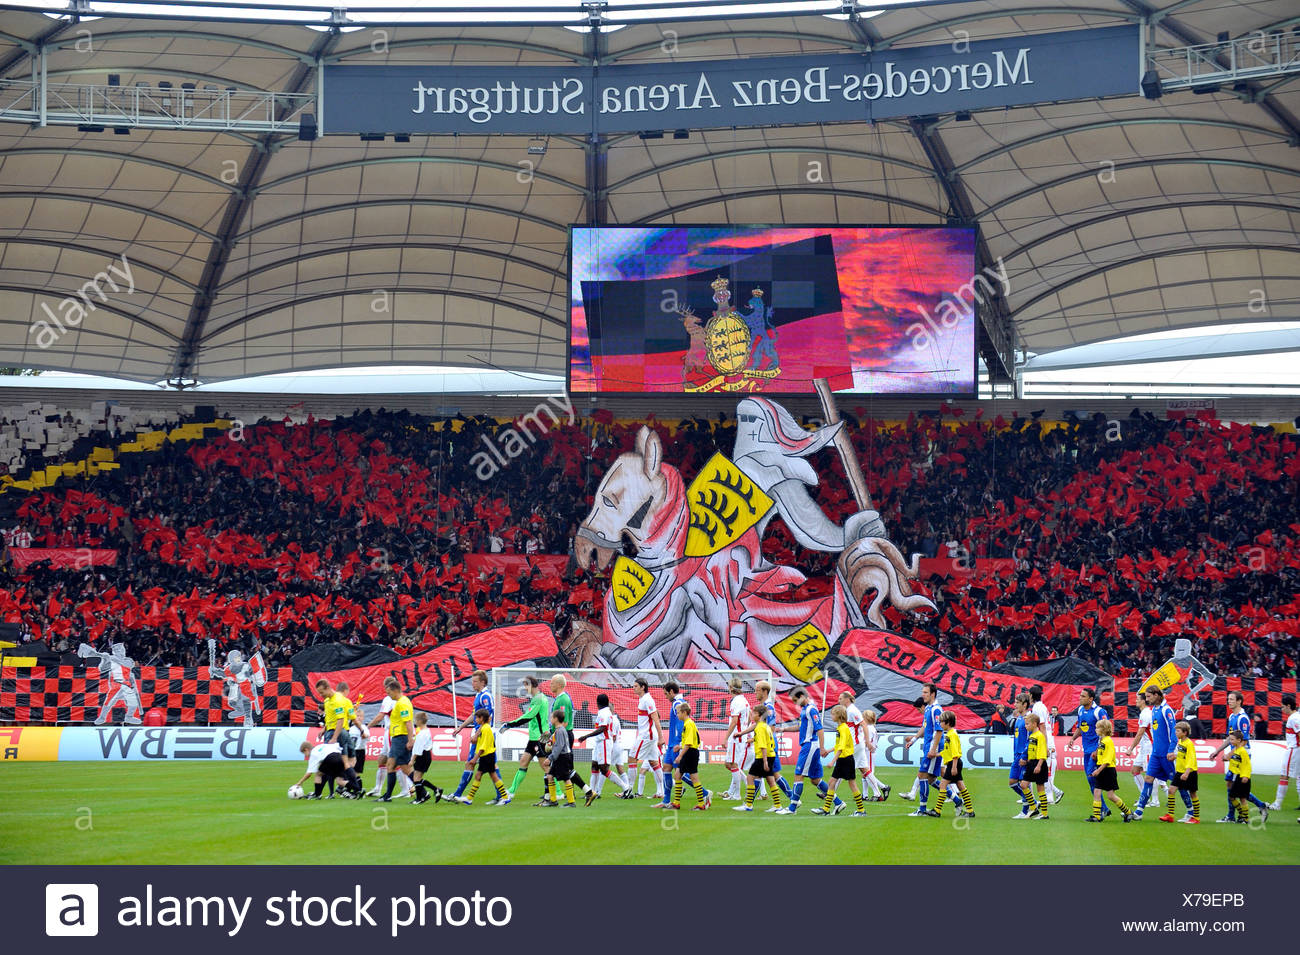 Action fan club fan curve VfB Stuttgart football club, knight on horseback with the incoming teams, Mercedes-Benz Arena, Stuttg - Stock Image